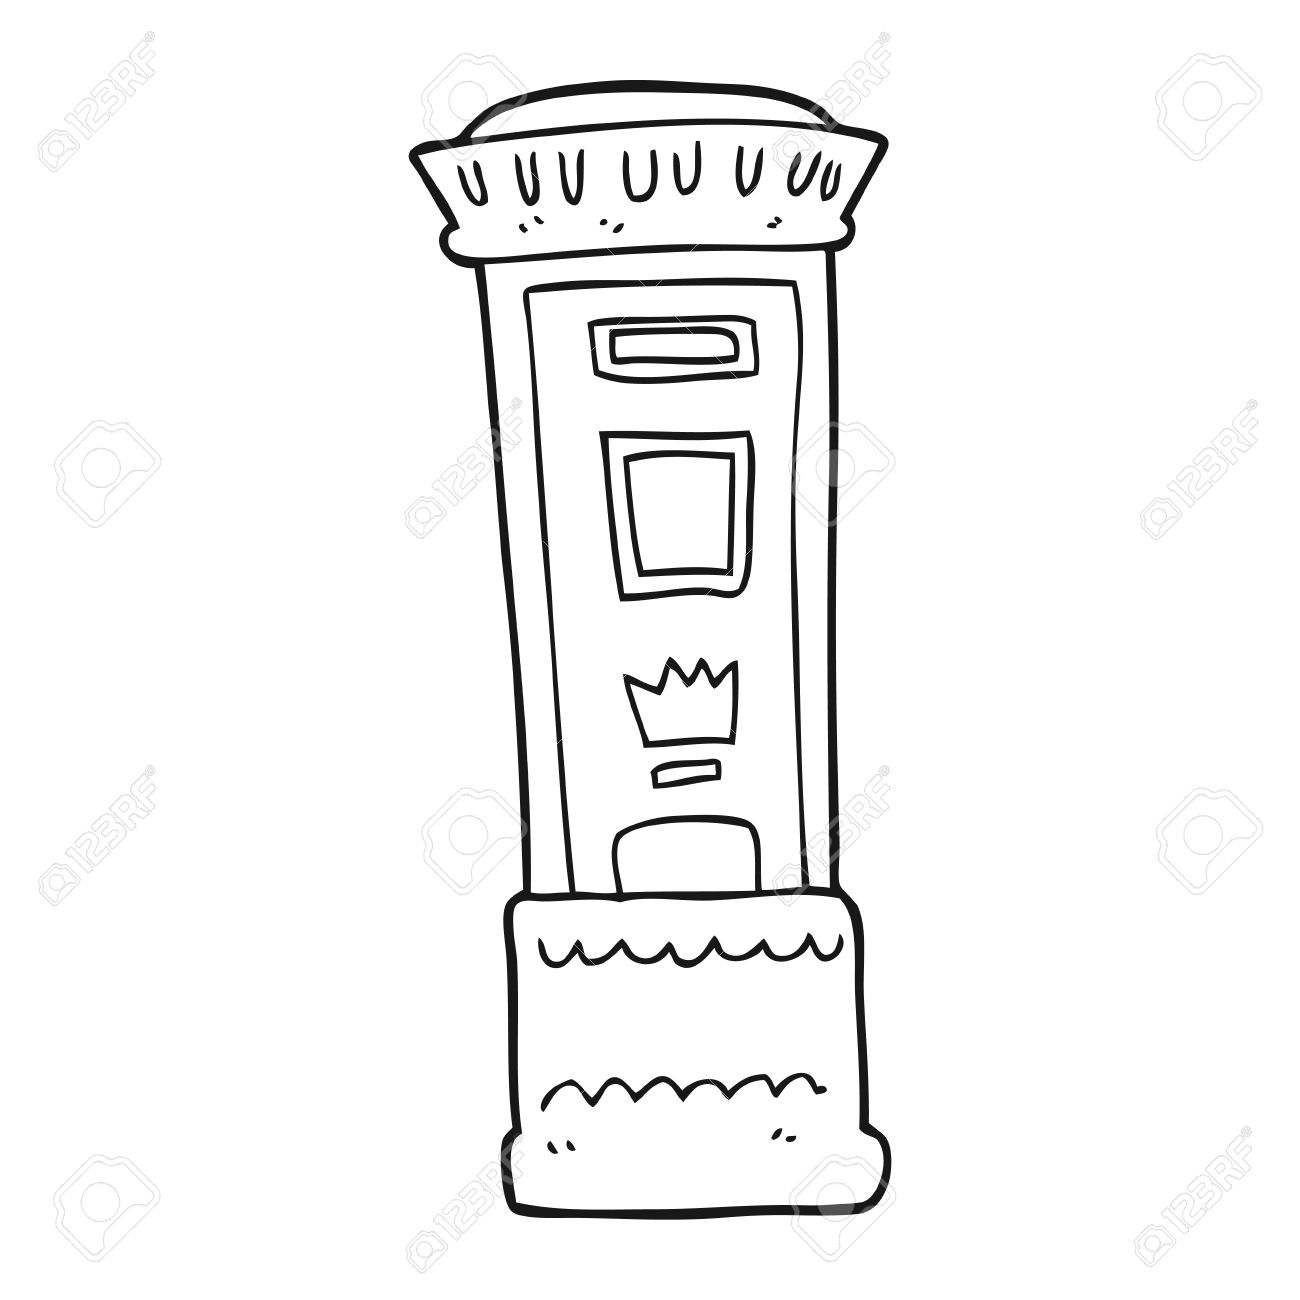 Letter Box Drawing At Getdrawings